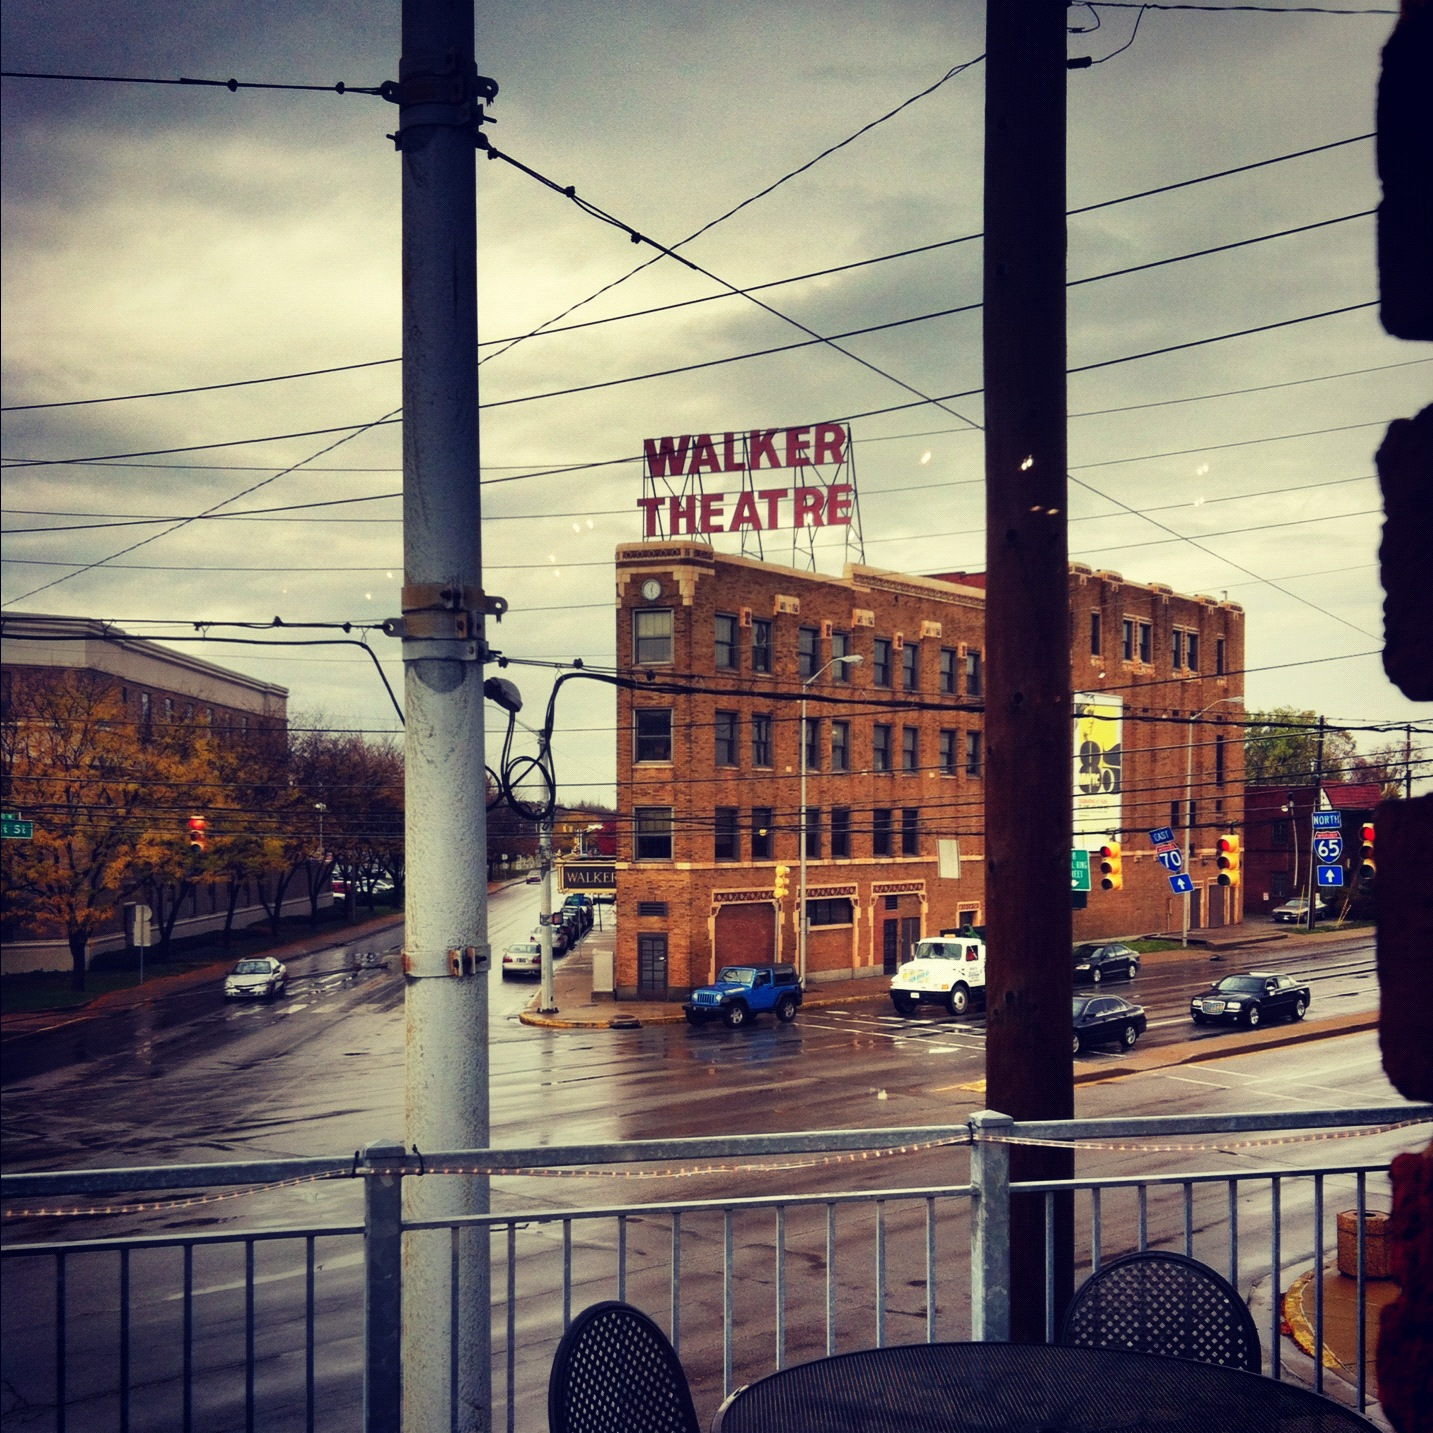 Room With a View: Indiana Avenue to Walker Theatre